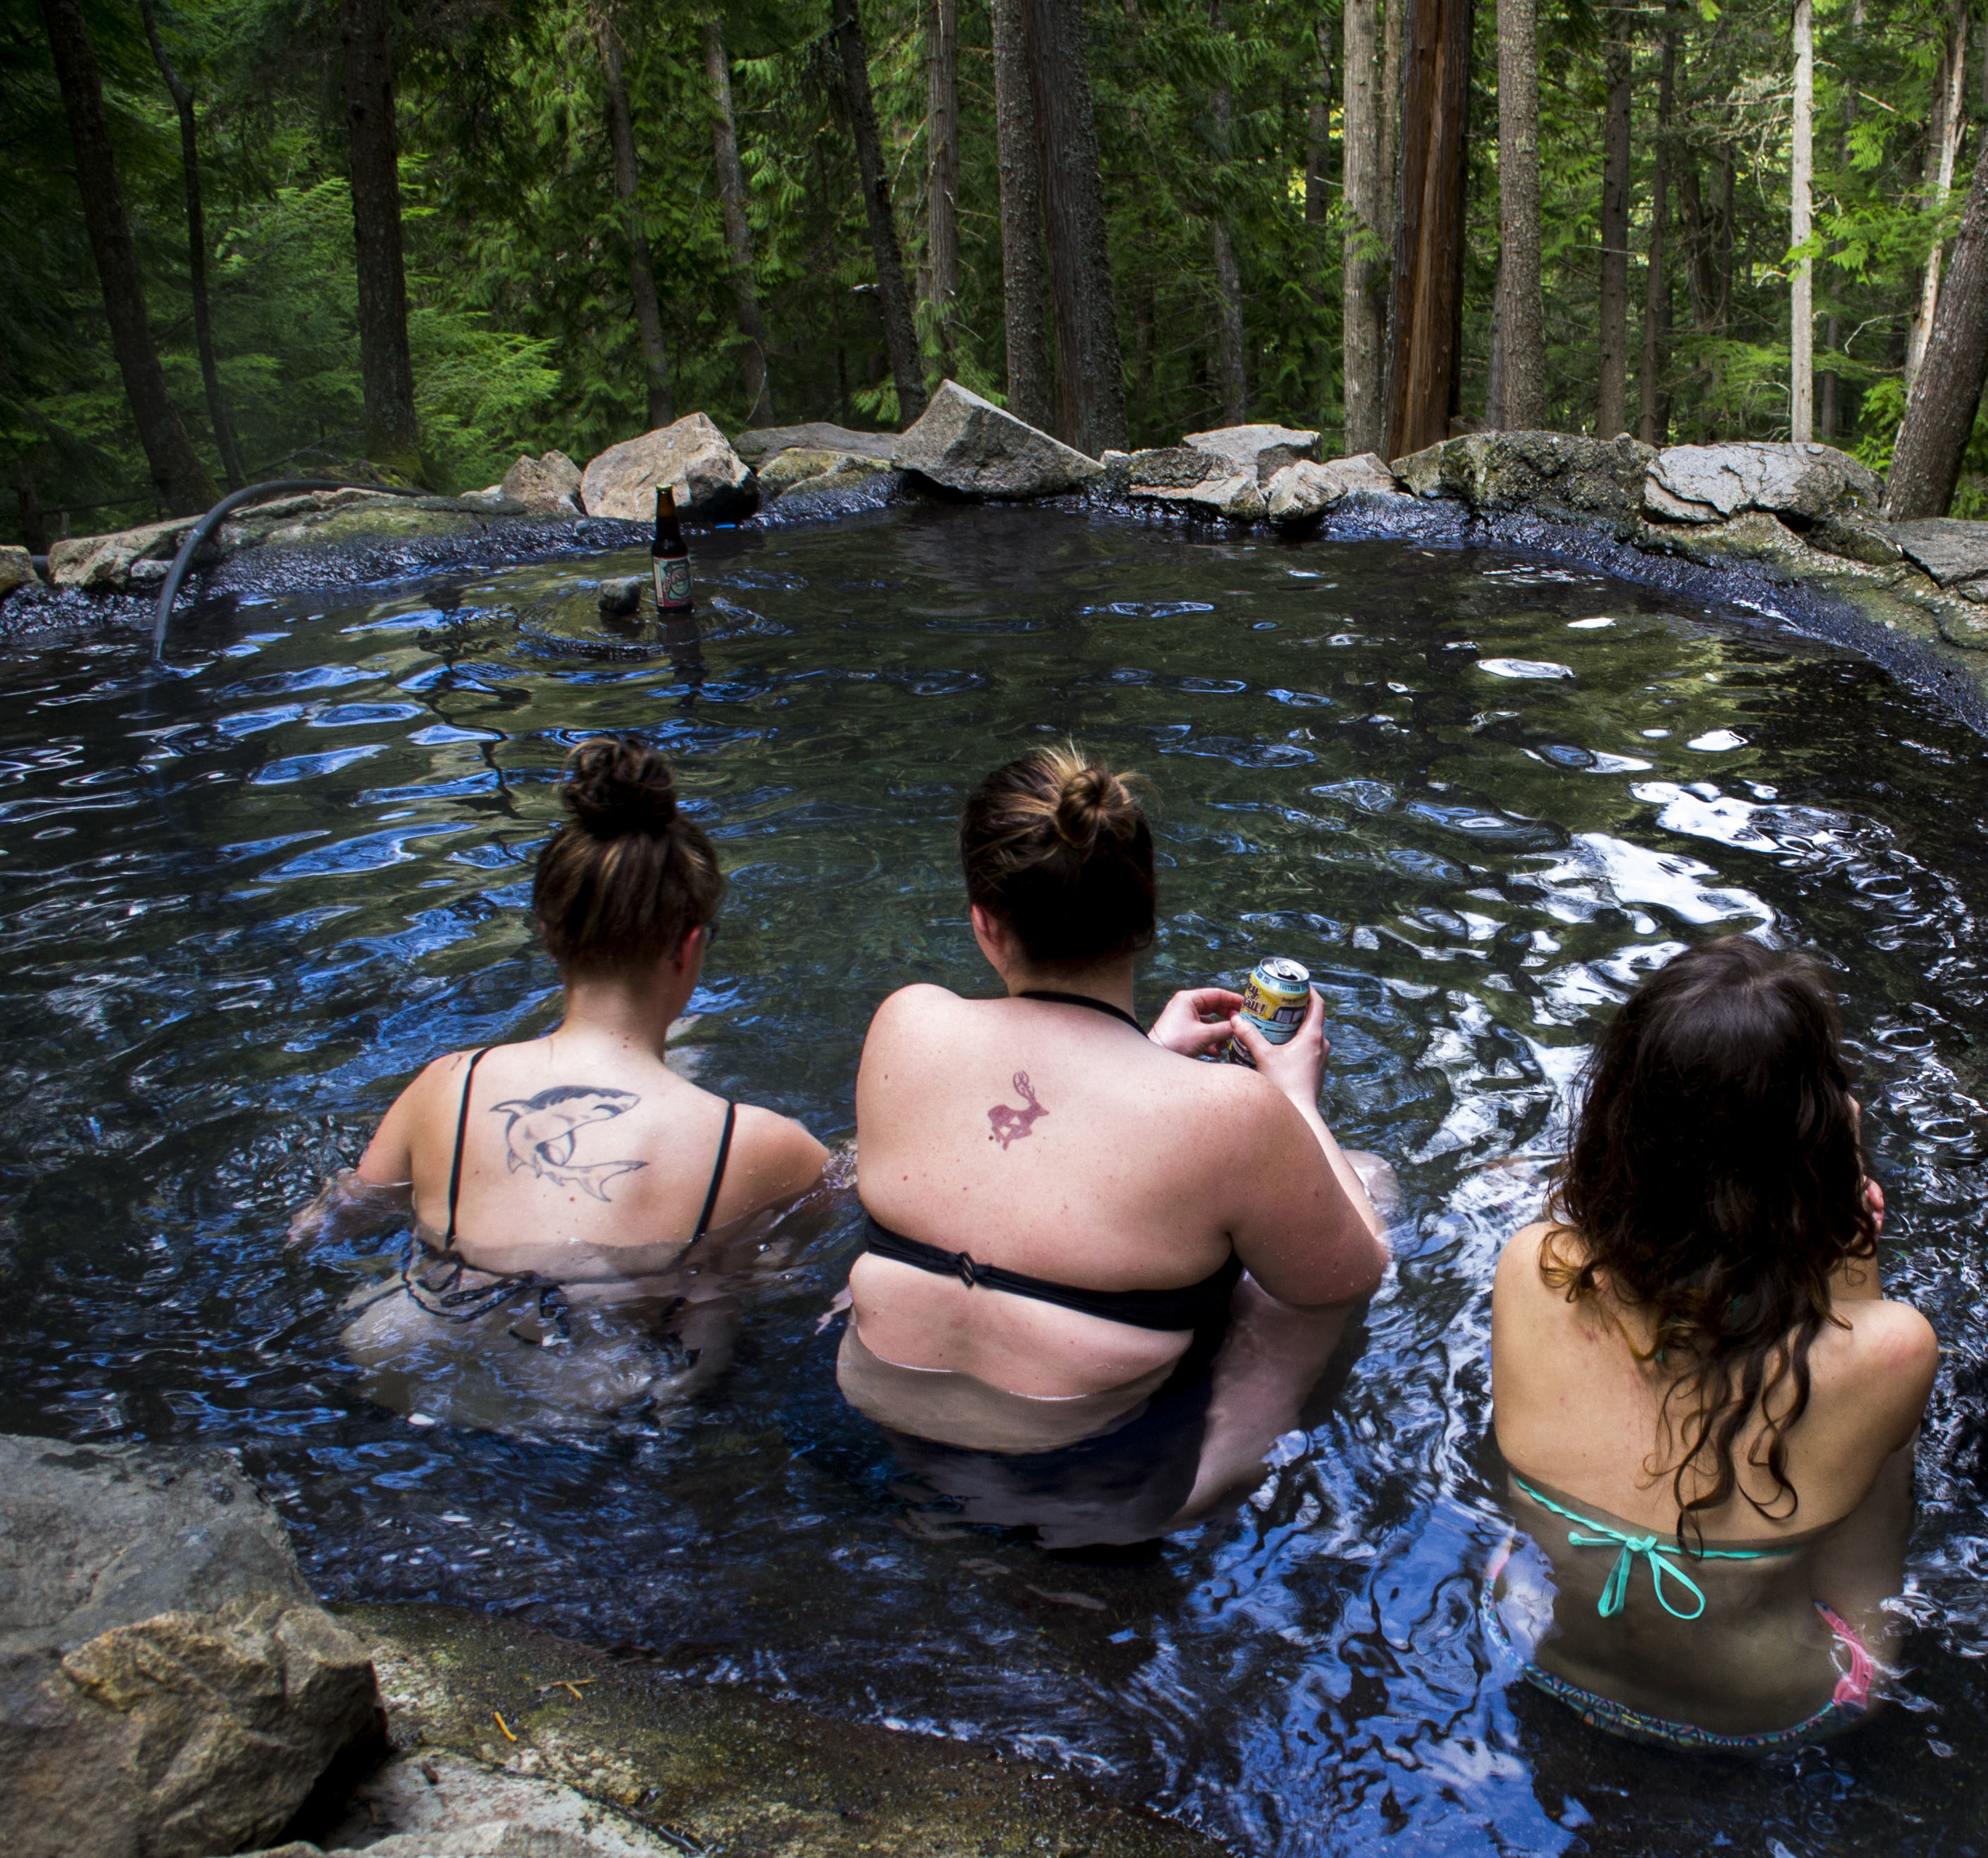 Visit hotsprings on your Canada ski trip.